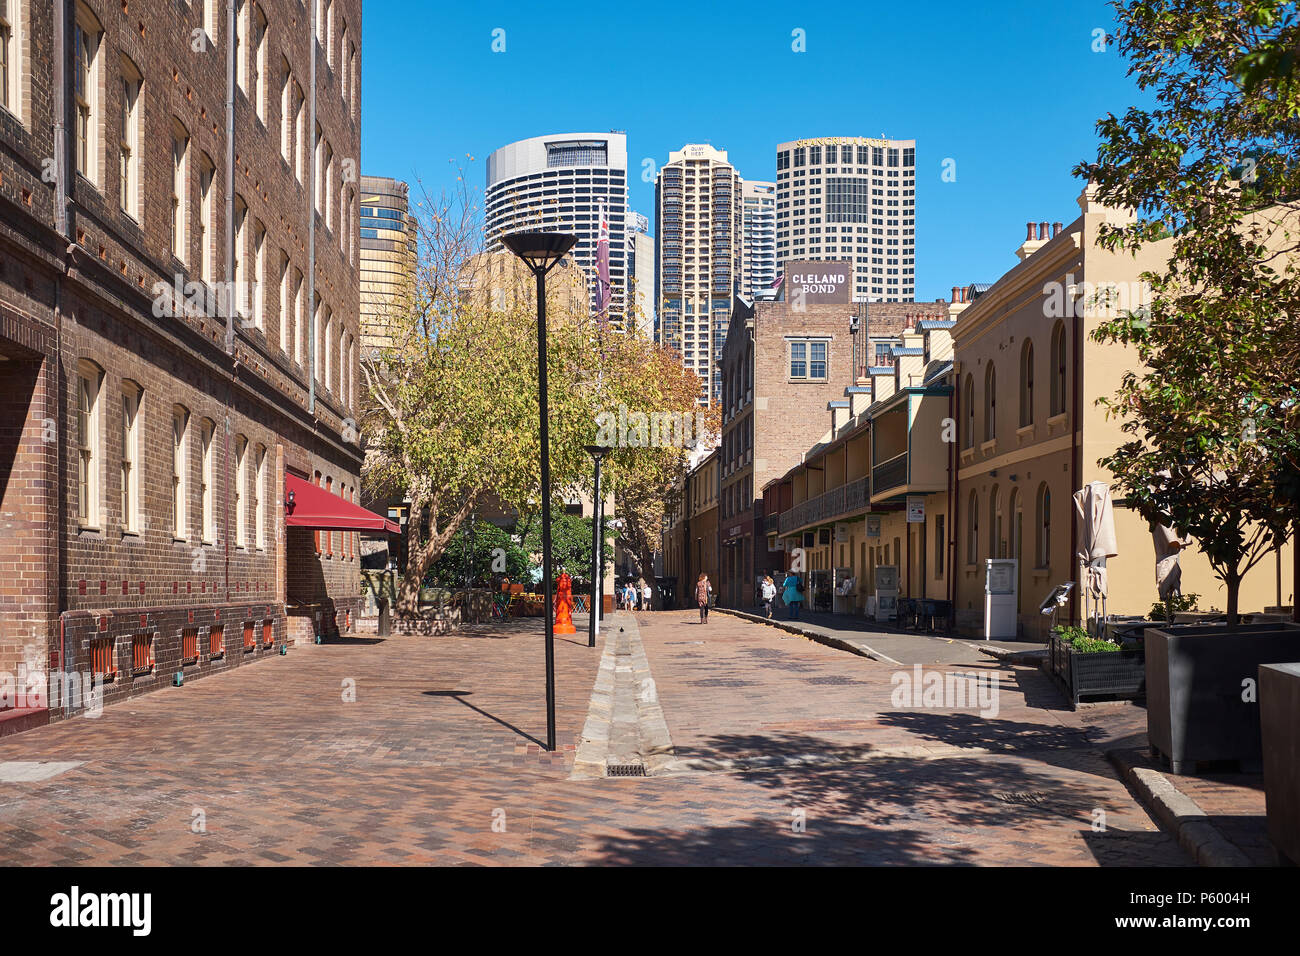 A street view of Playfair Street in The Rocks area of Sydney with modern high-rise buildings of Sydney behind on a sunny and cloudless blue sky day - Stock Image